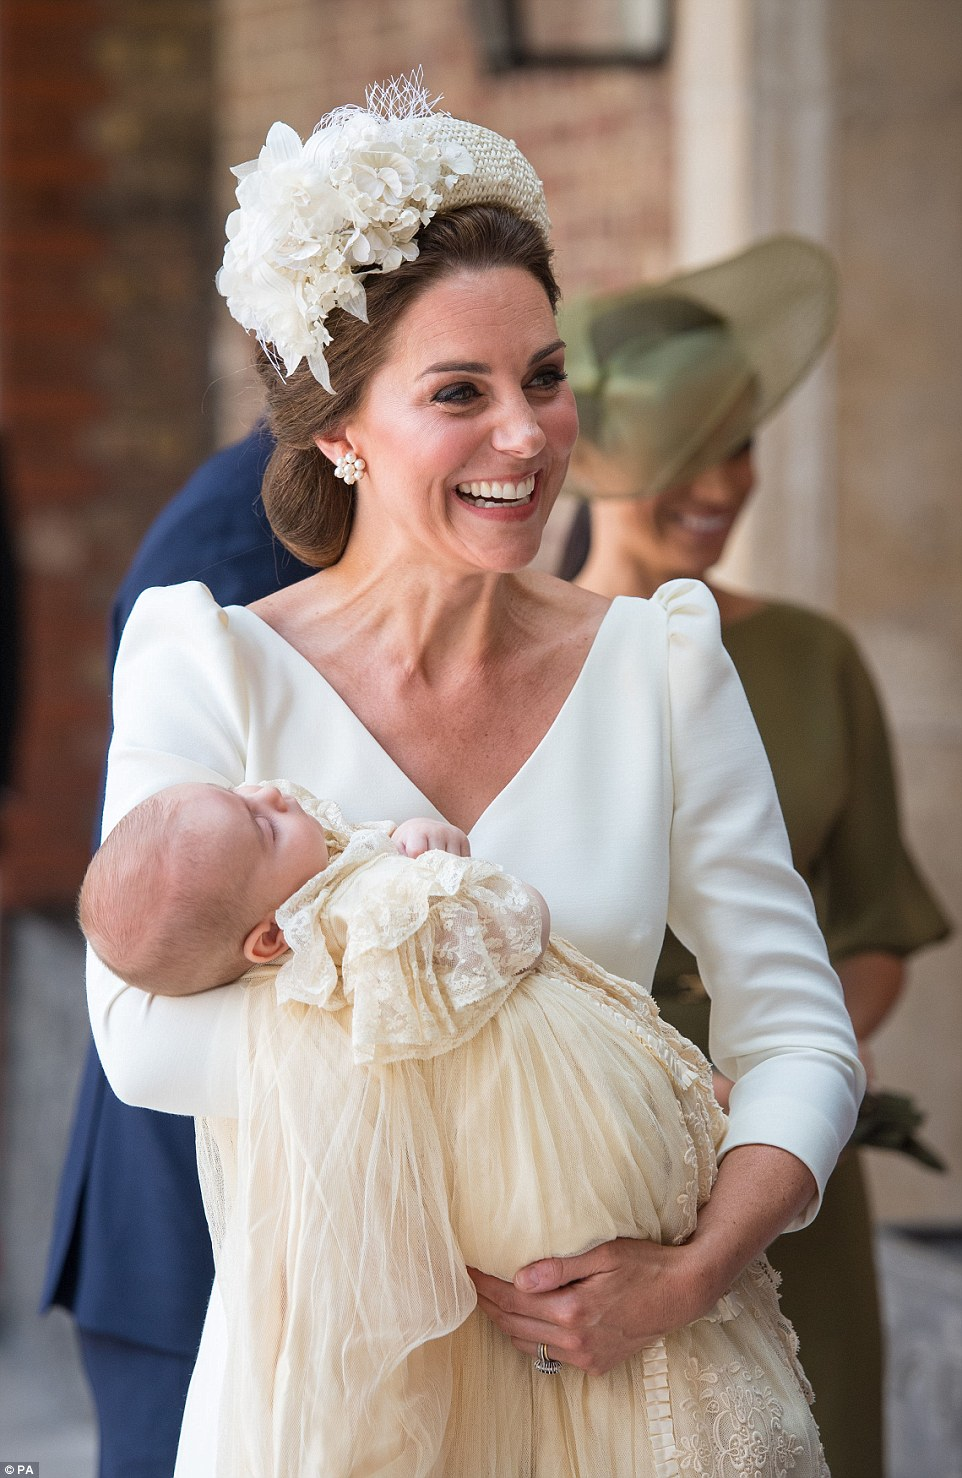 Kate Middleton wears Alexander McQueen for Prince Louis' Christening